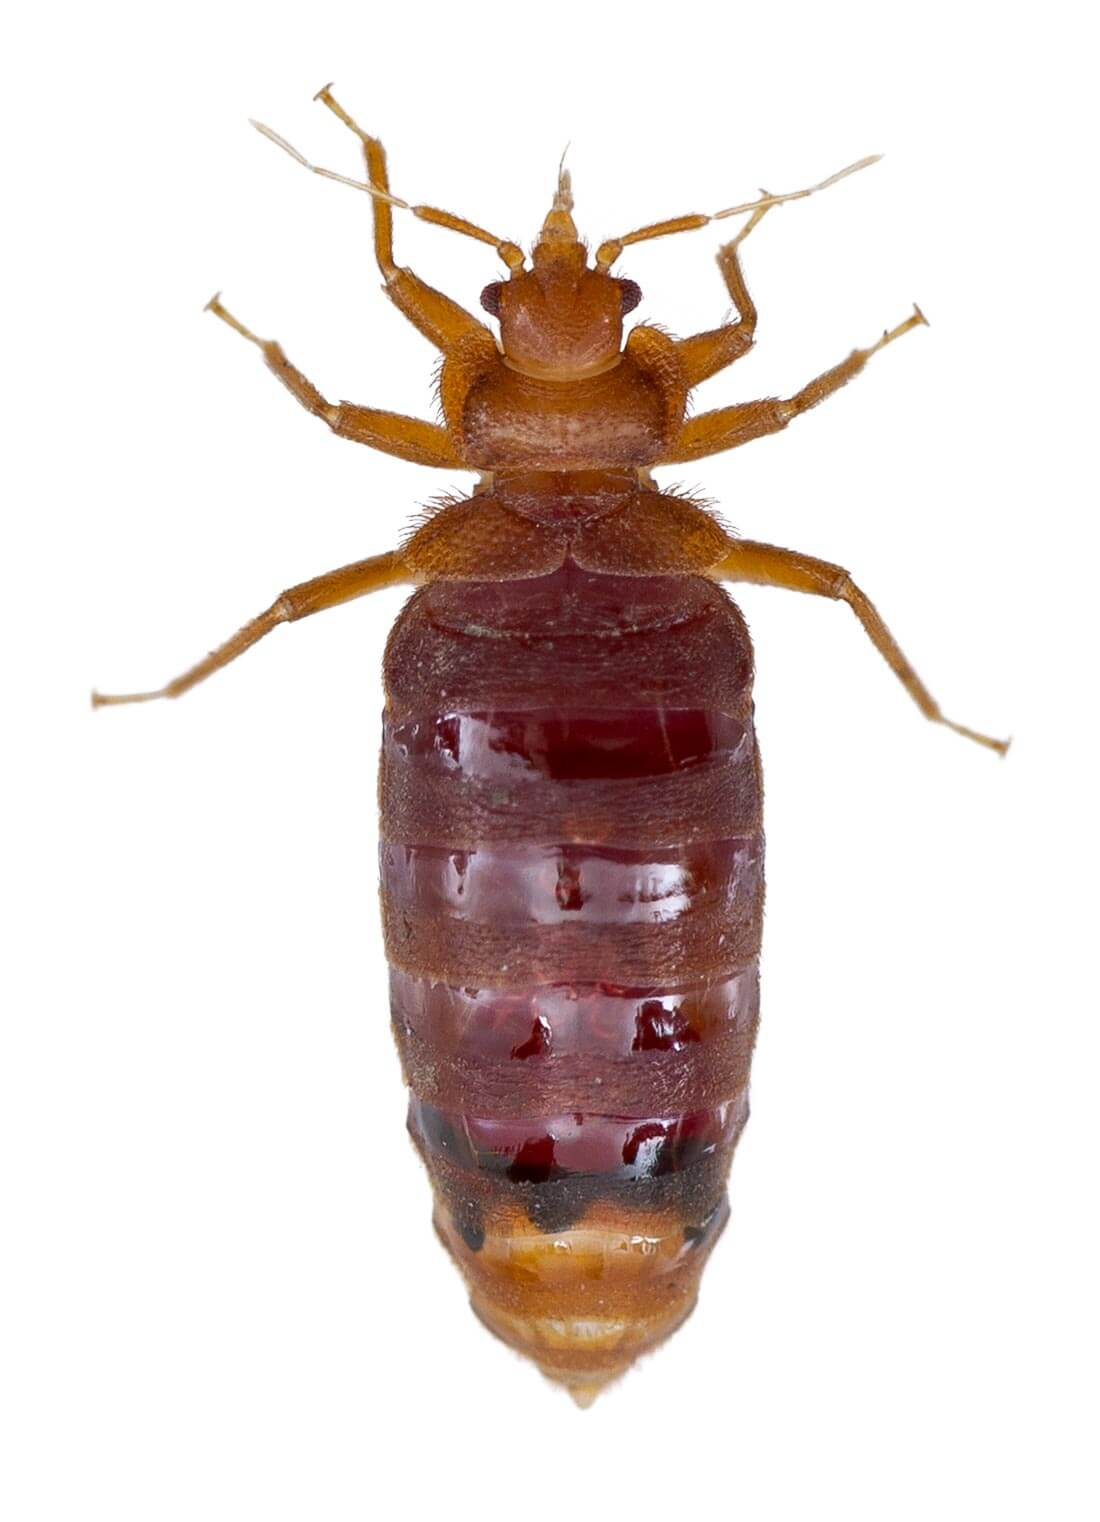 Adult Common Bed Bug: Broadly flattened, oval insect with greatly reduced wings (appearing wingless) and long, slender legs and antennae. Brown and approximately 1/4 - 3/8 inches long.